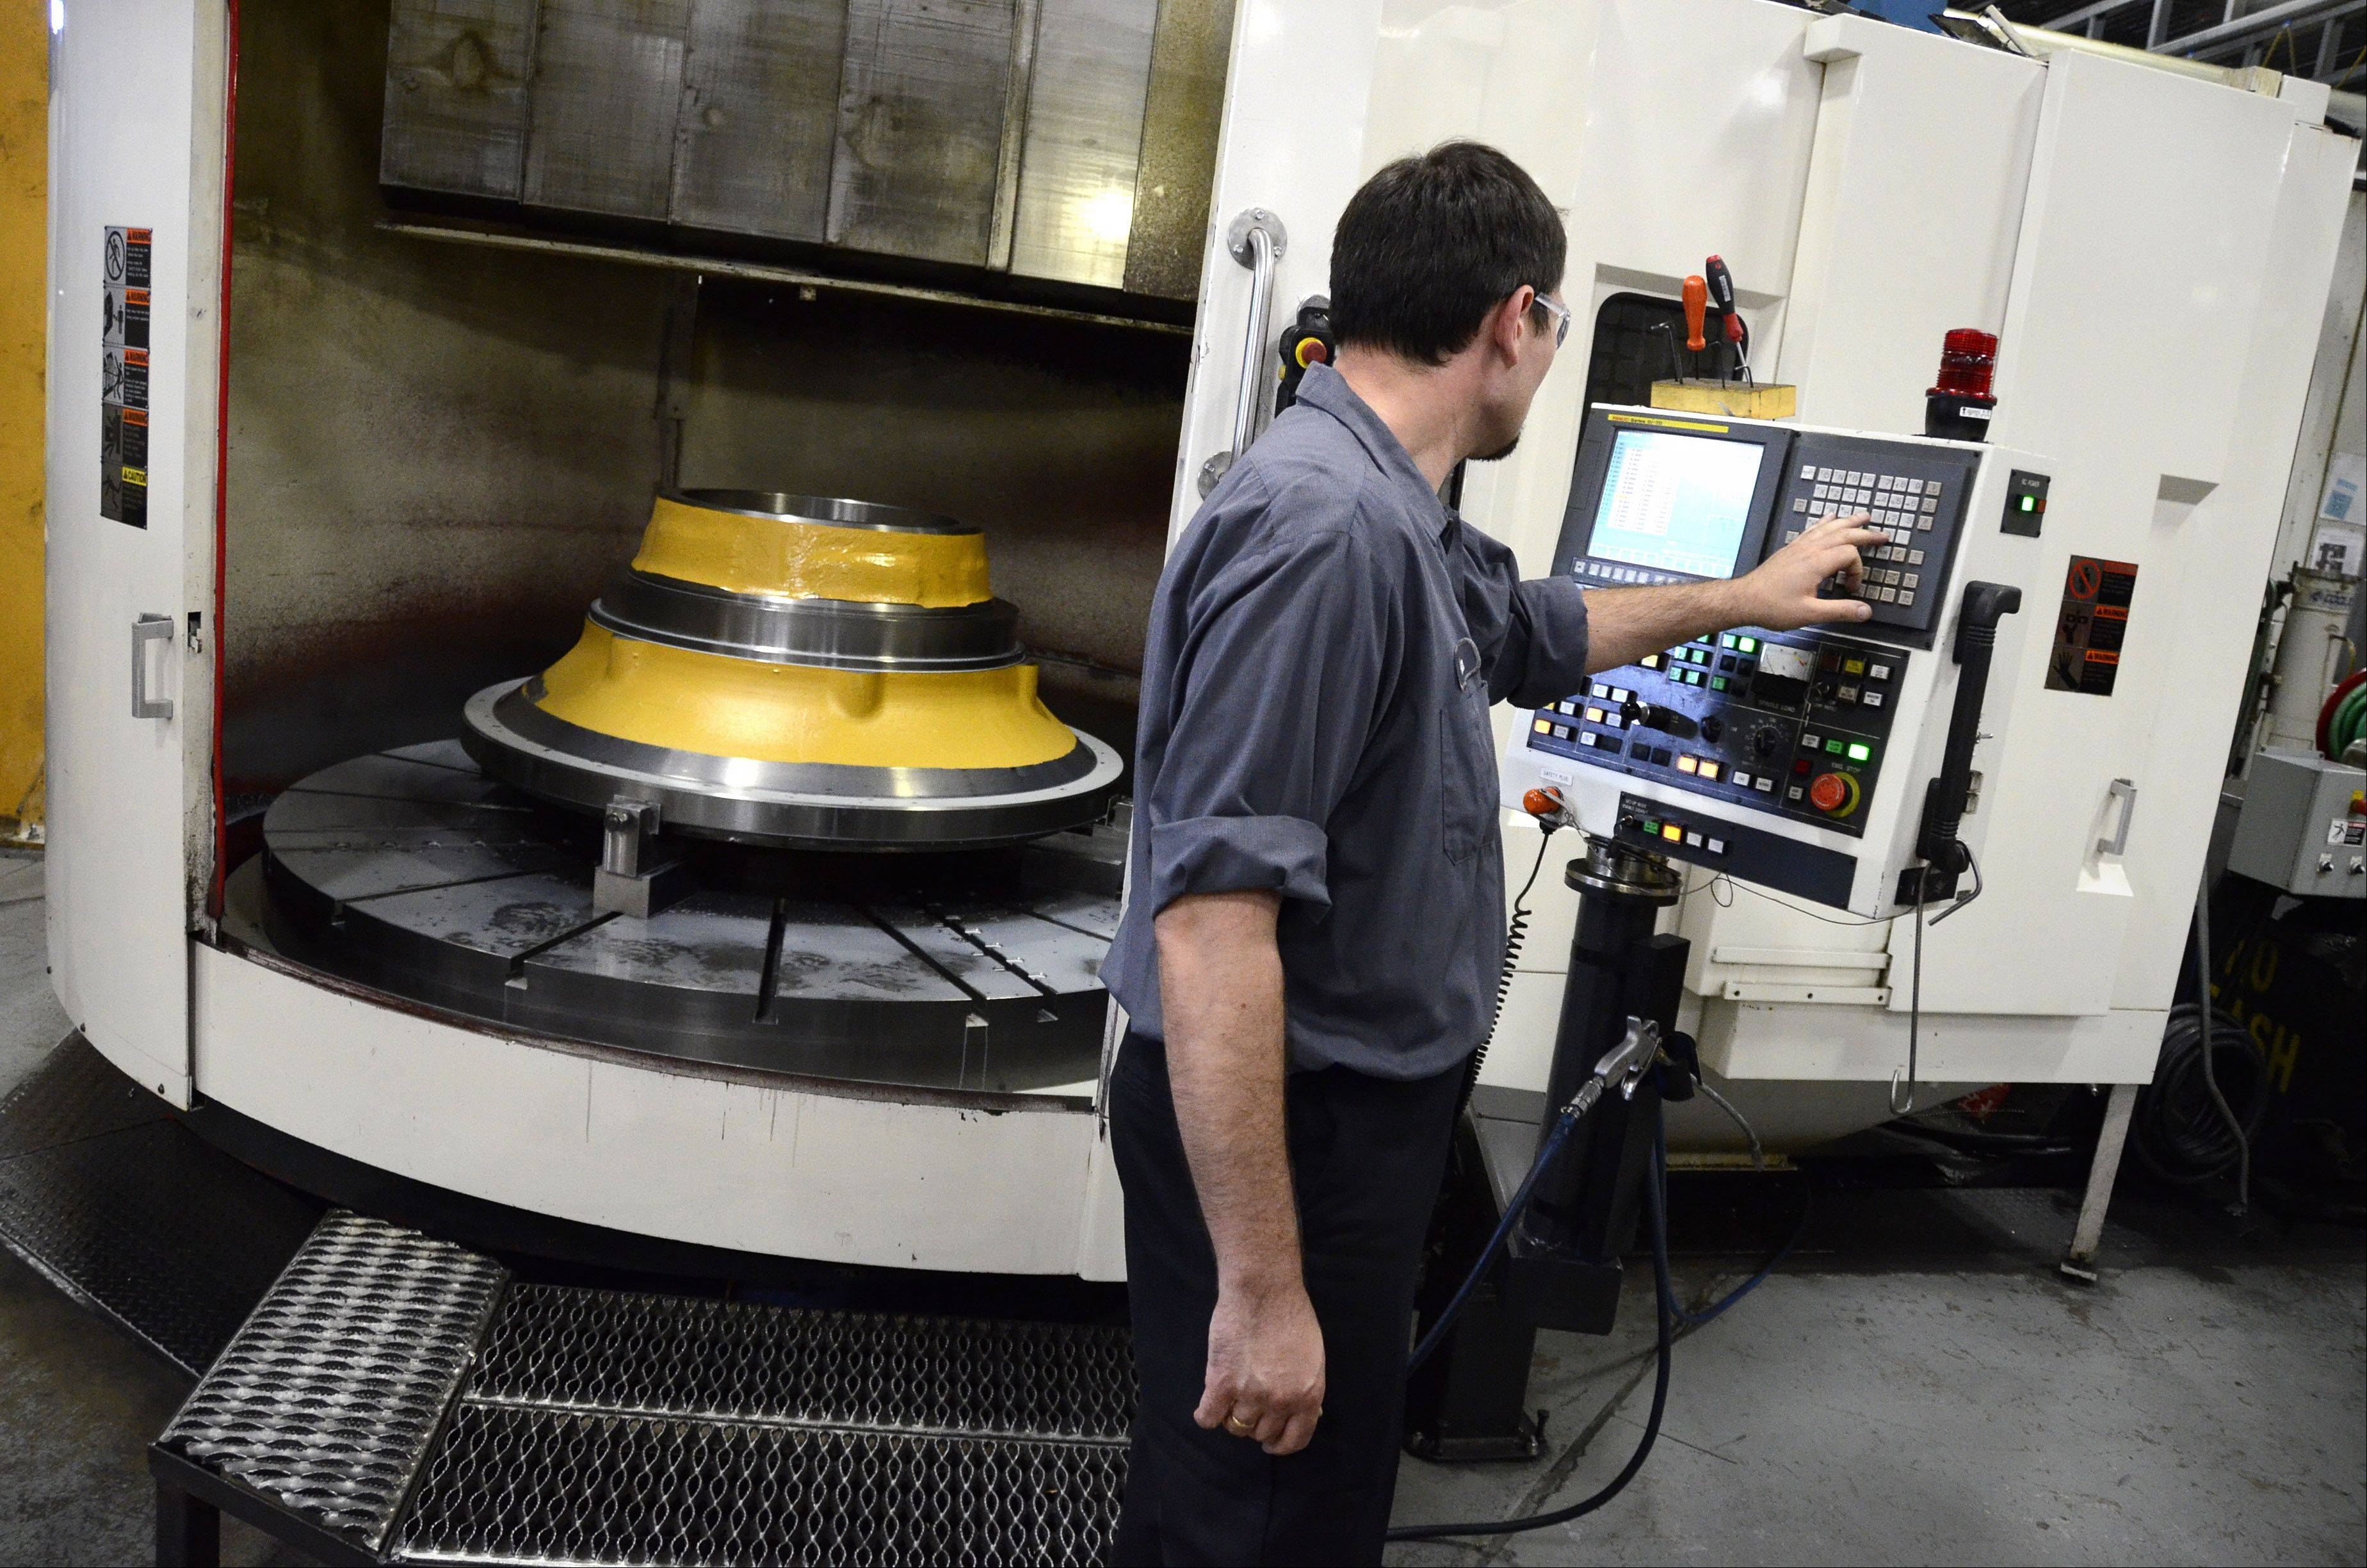 An innovative Harper College program aimed at preparing students to fill available jobs in the manufacturing sector soon will spread to community colleges across the state thanks to a $12.9 million grant awarded through the U.S. Department of Labor.